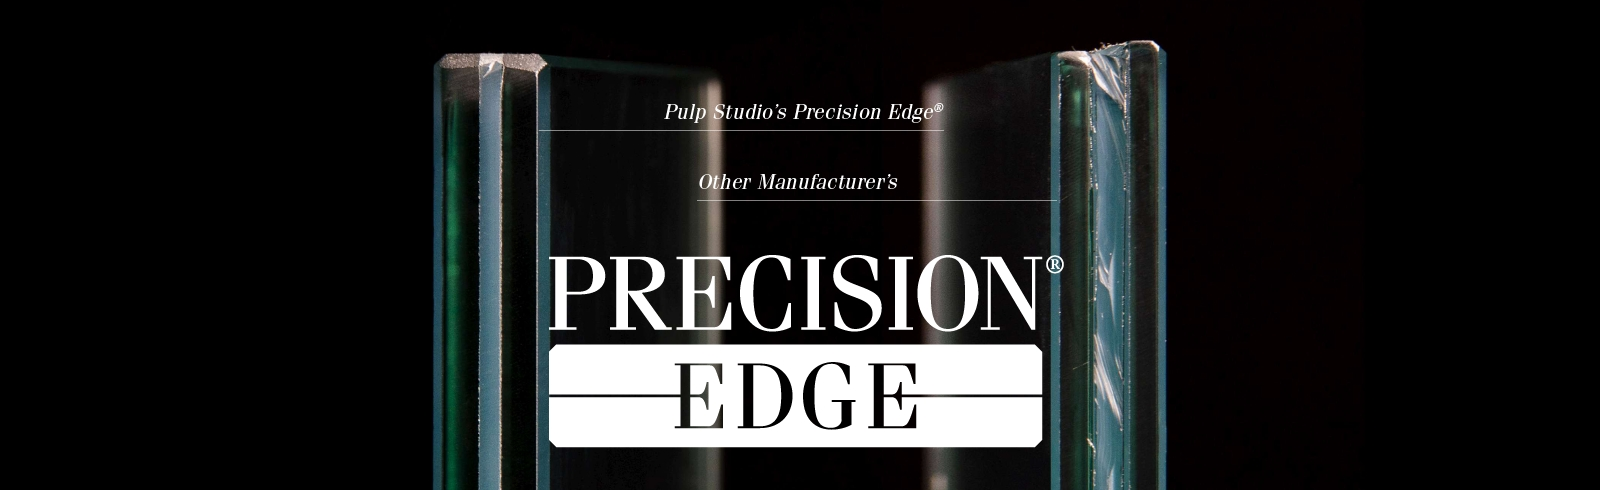 Pulp Studio introduces PRECISION EDGE®